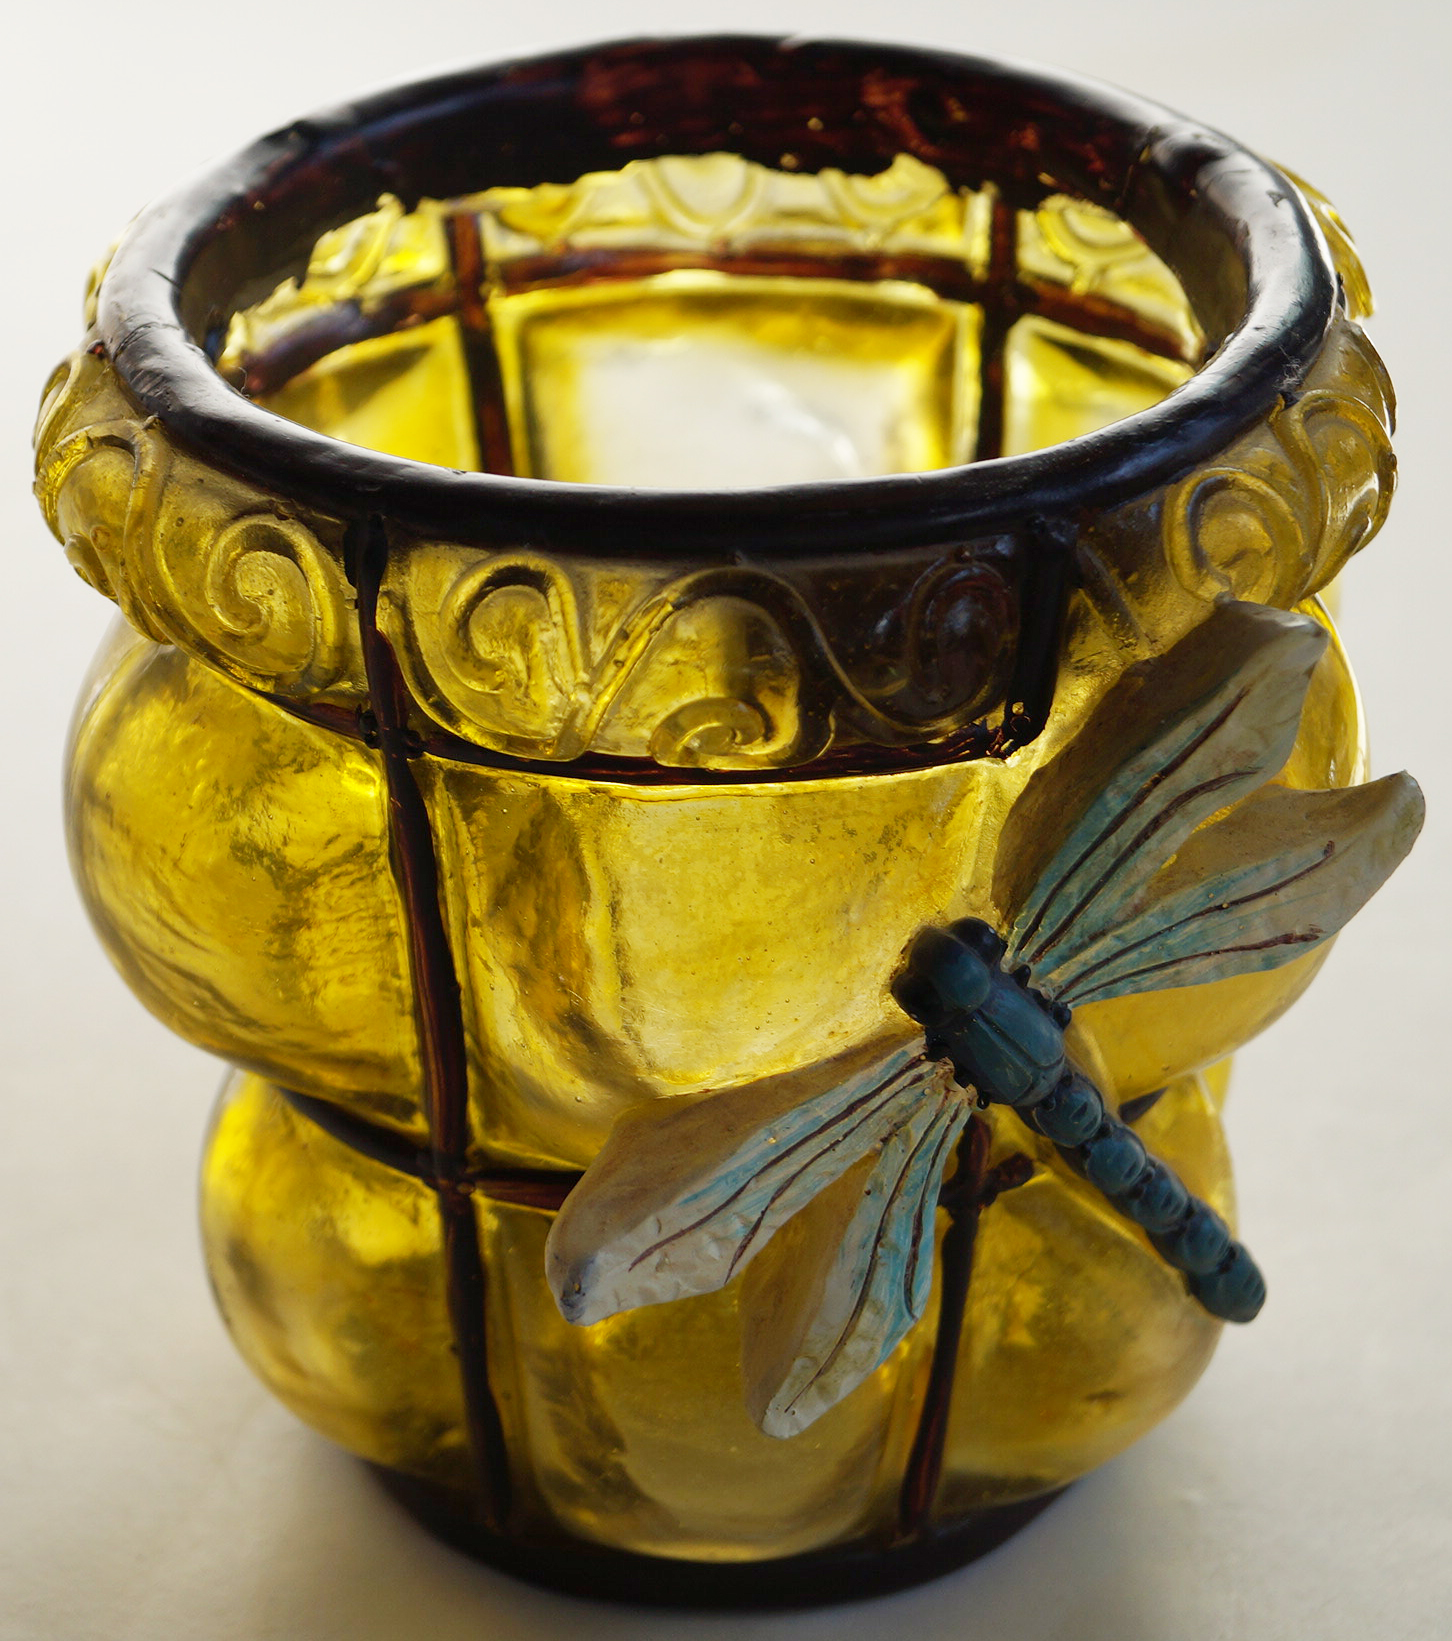 Декоративна саксия водно конче кашпа (Decorative pot dragonfly)